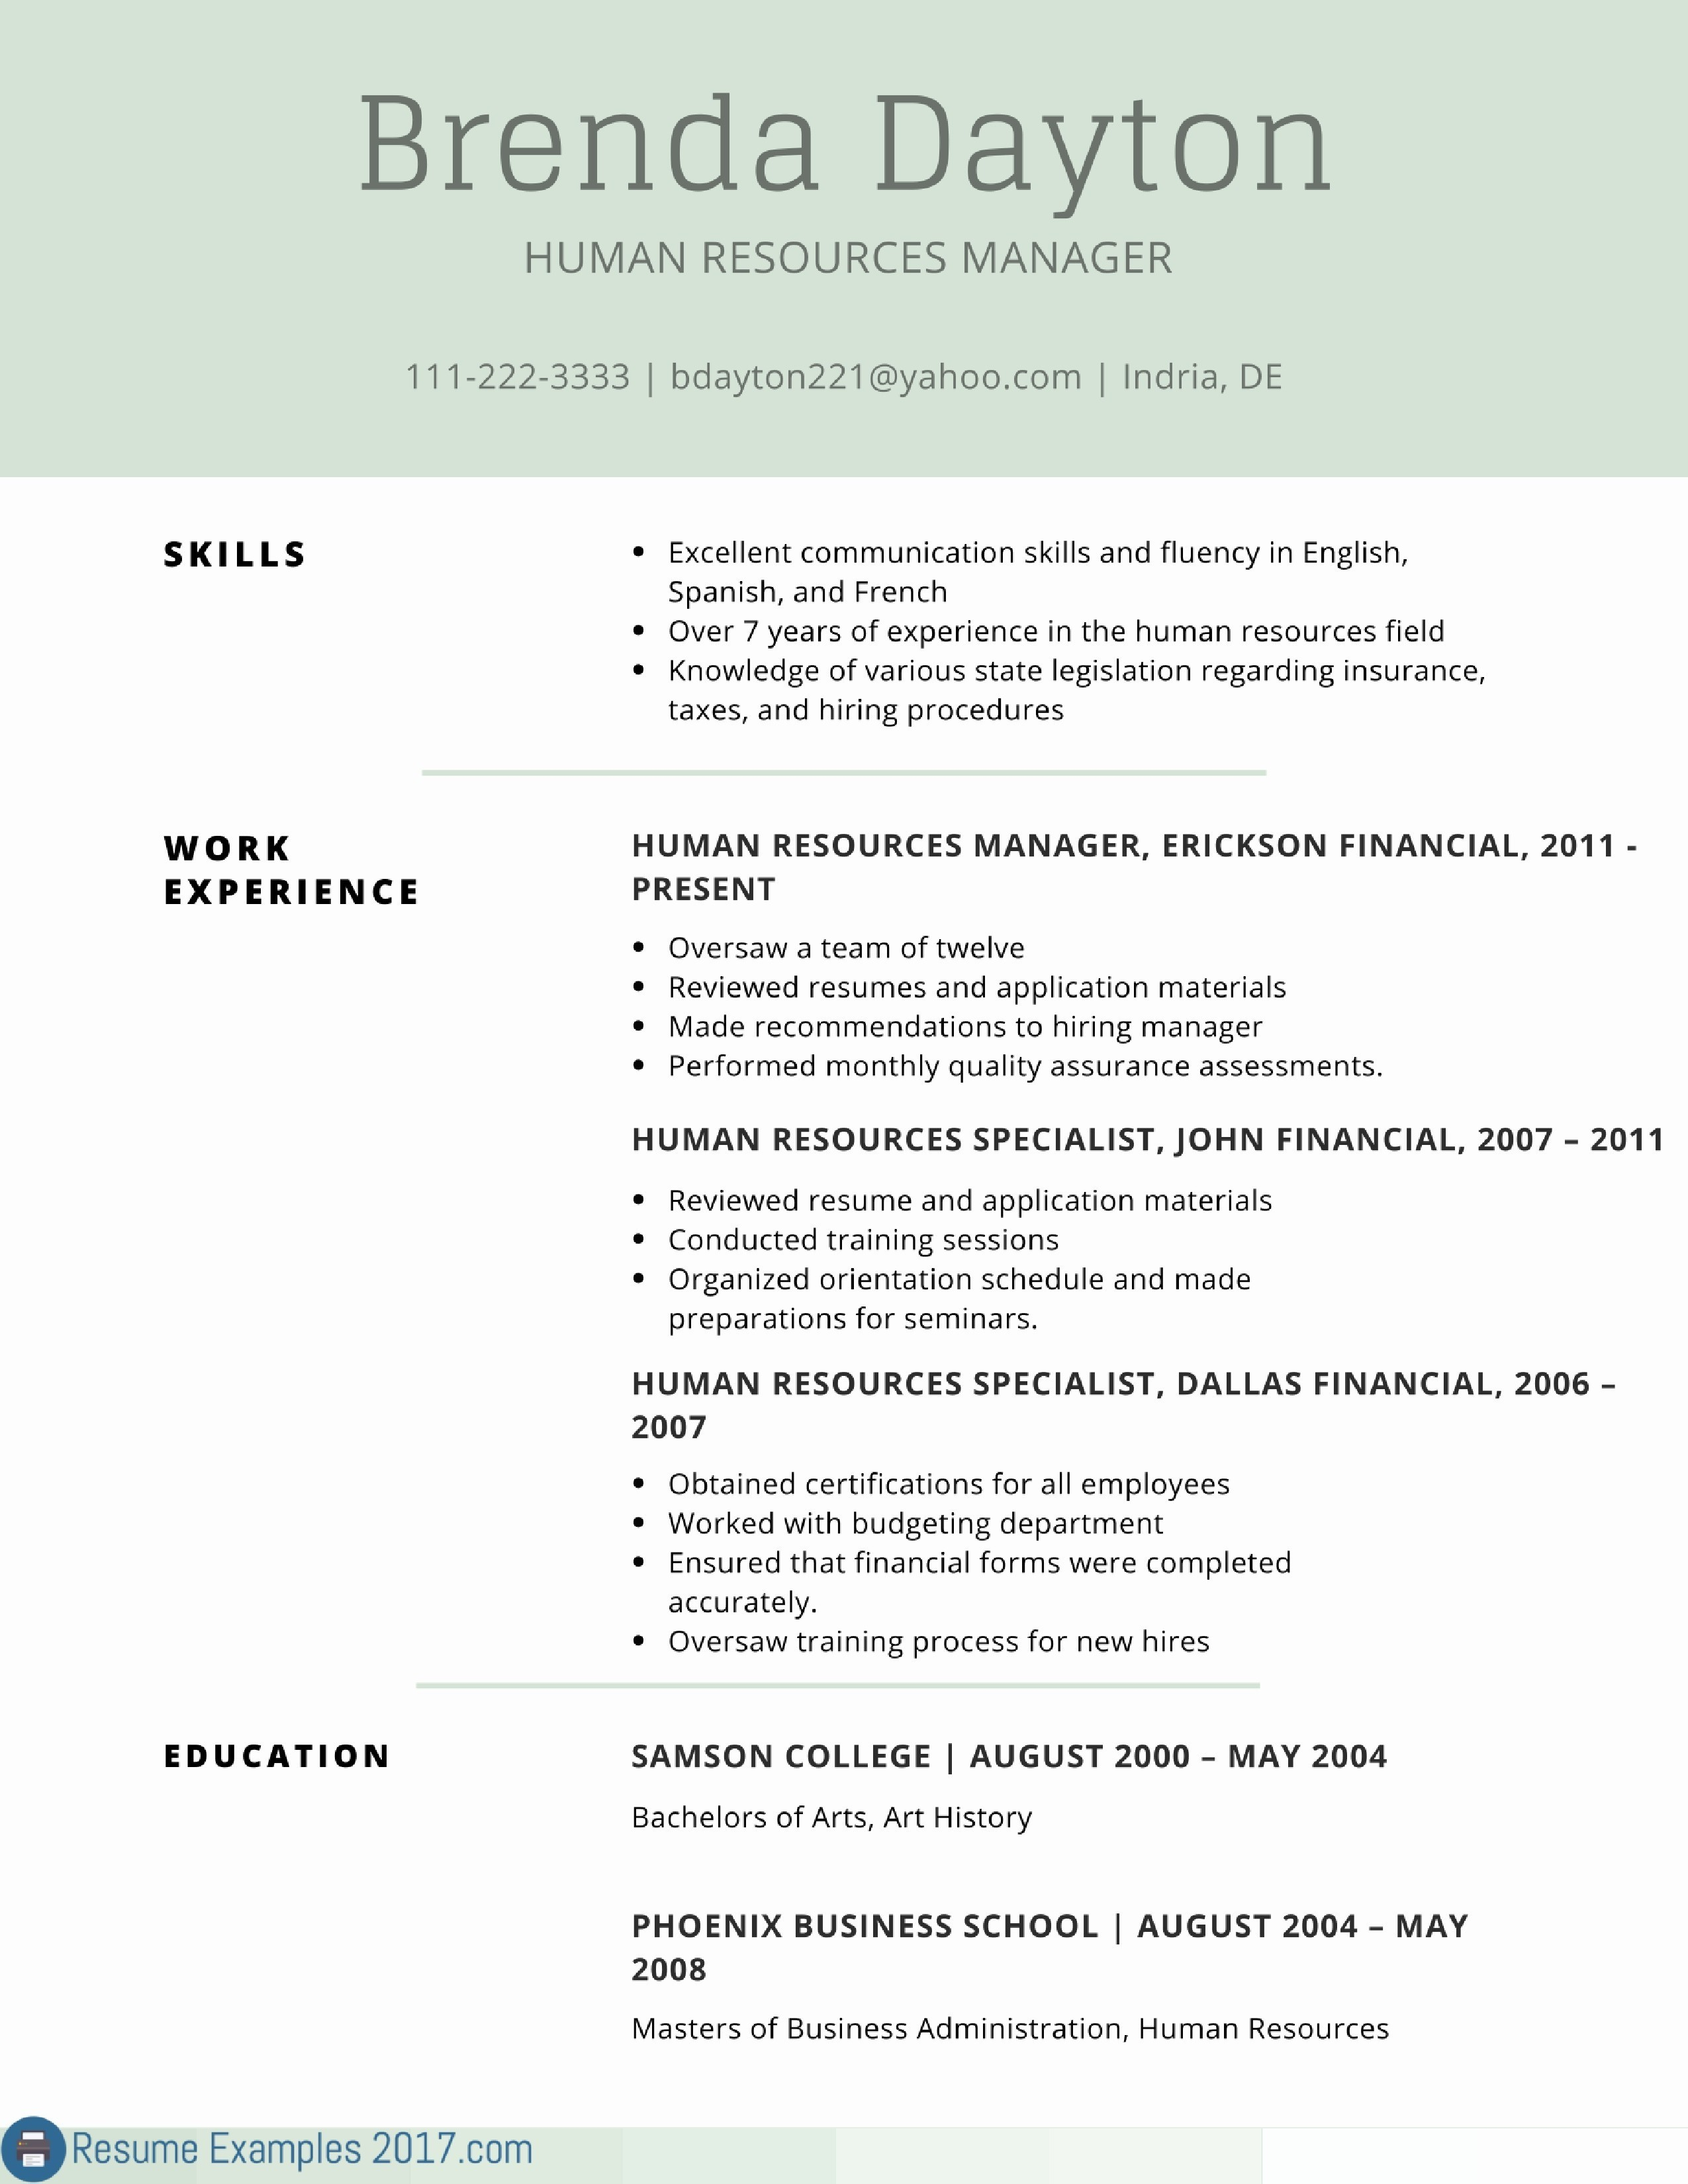 20 Years Experience Resume - Good Resume Examples Fresh 30 Inspirational 20 Years Experience